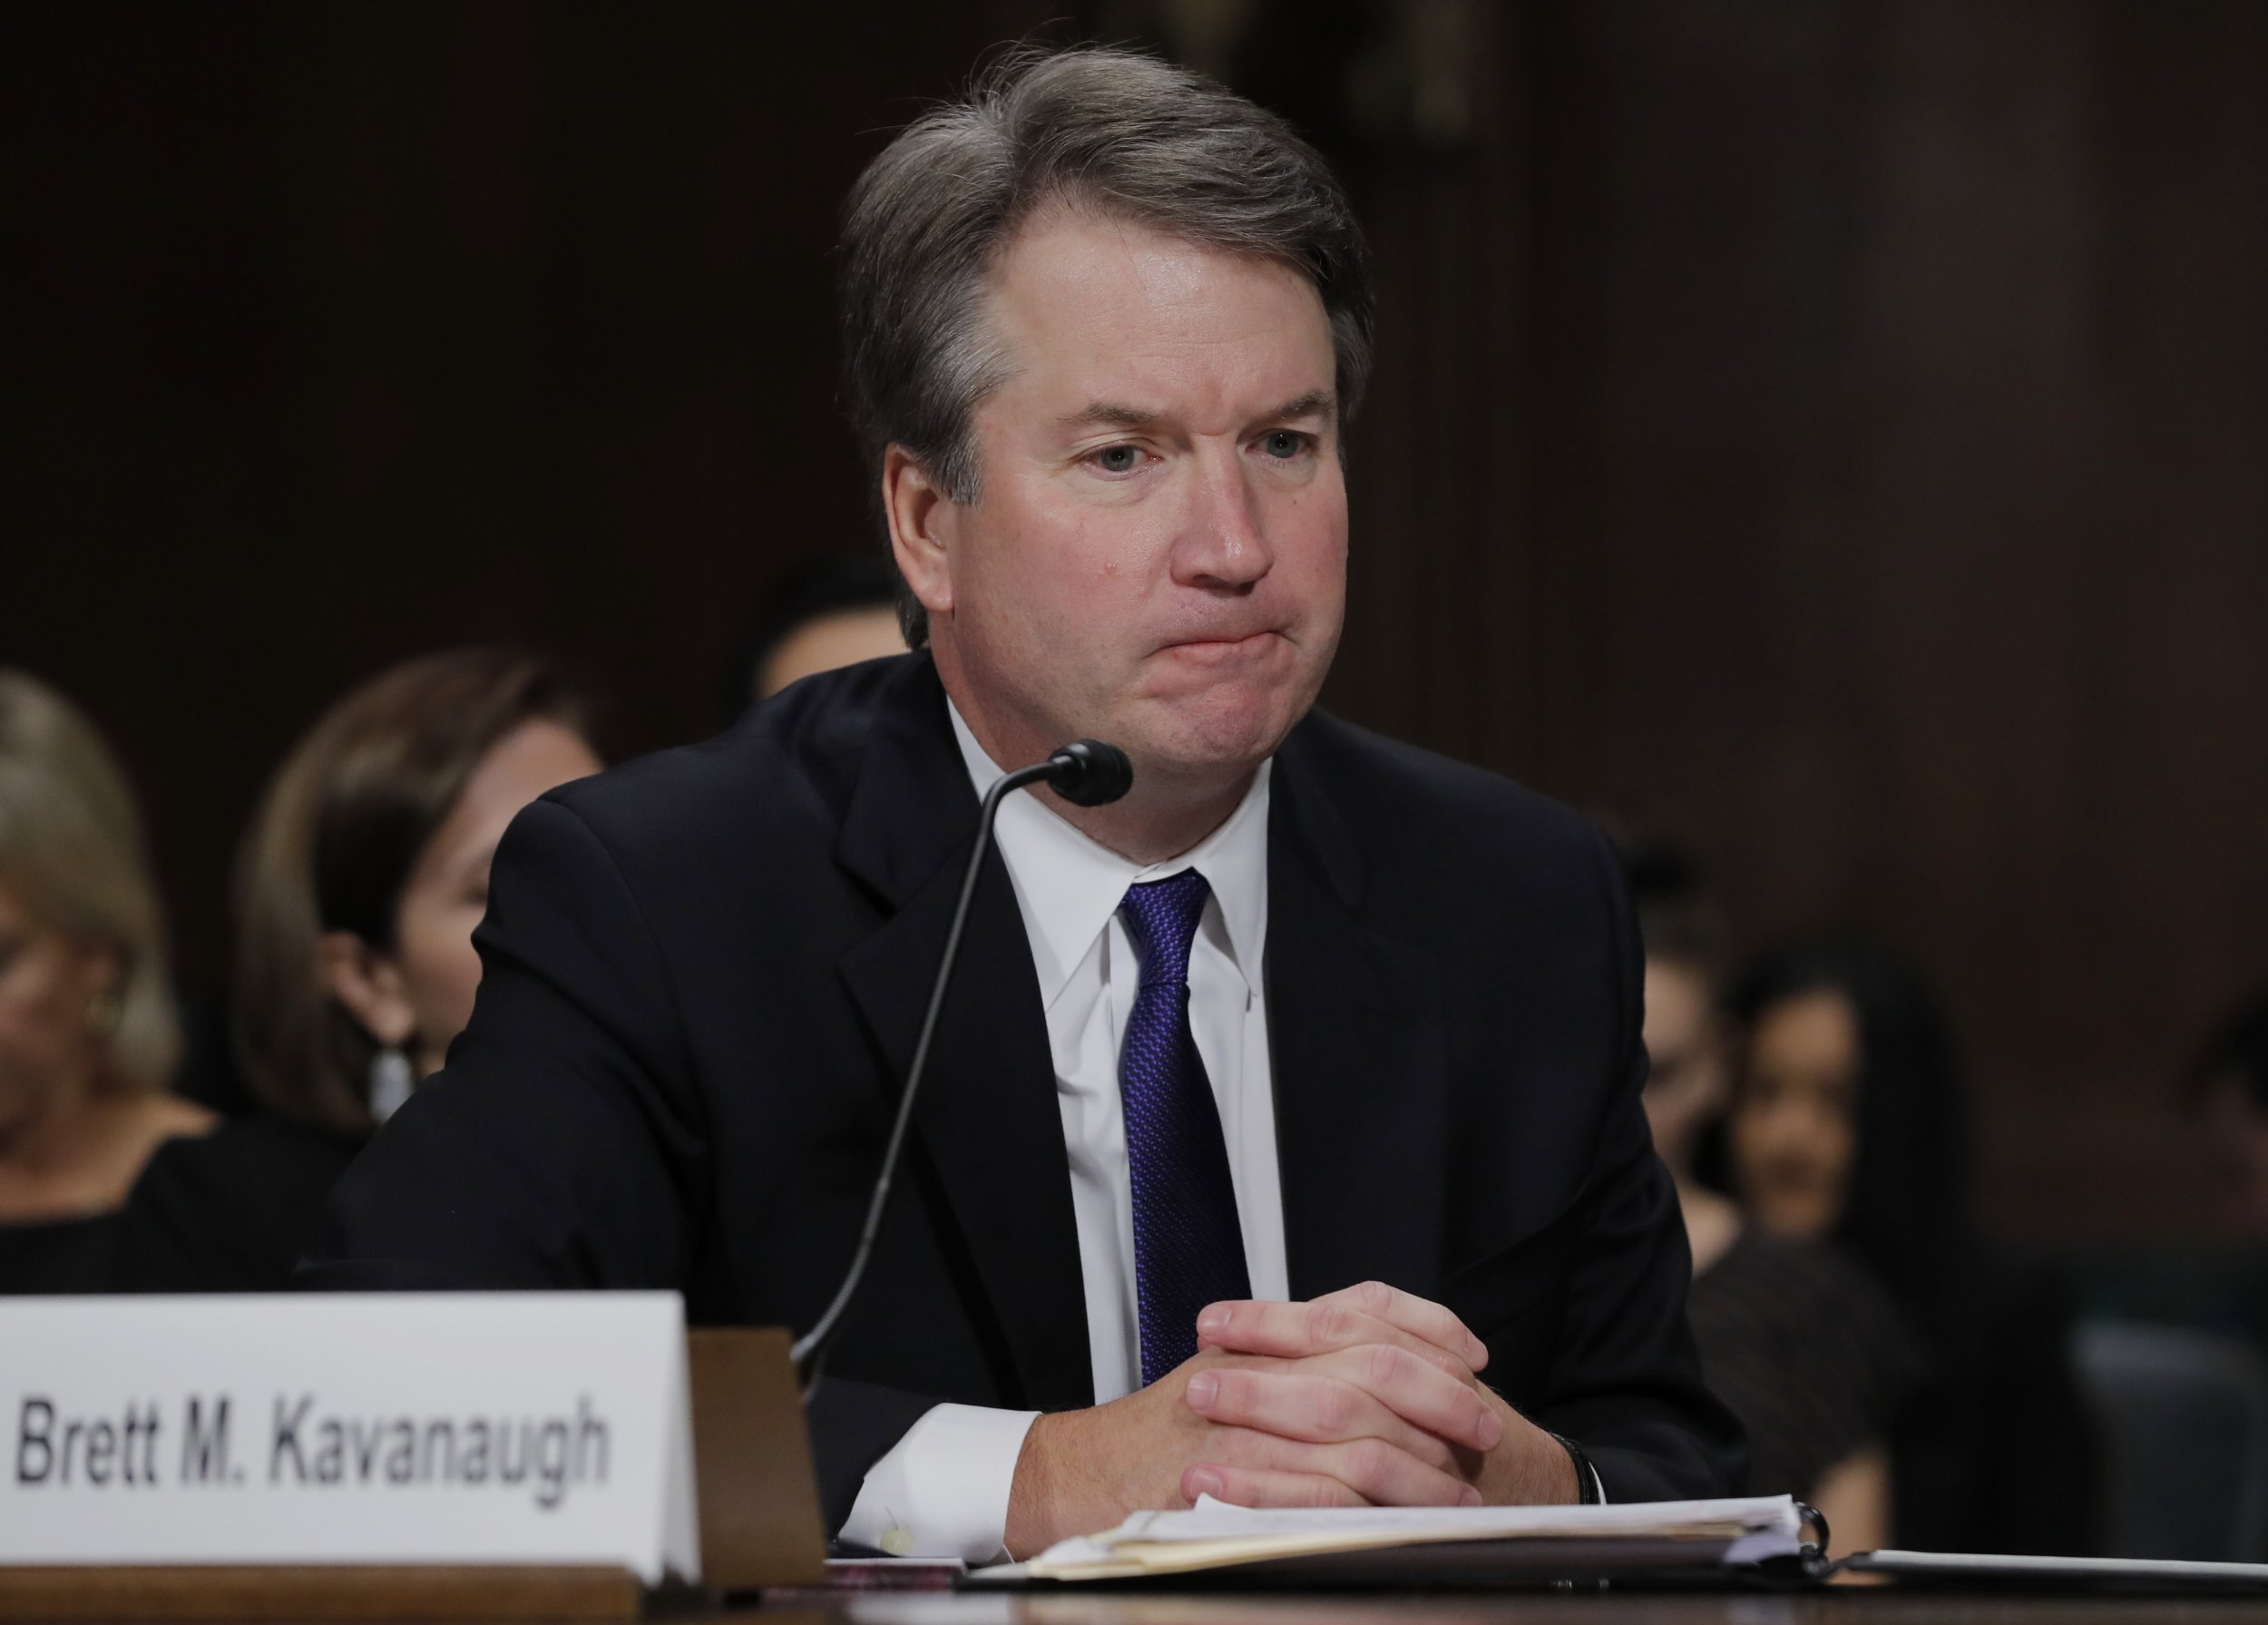 impeach Kavanaugh after official supreme court